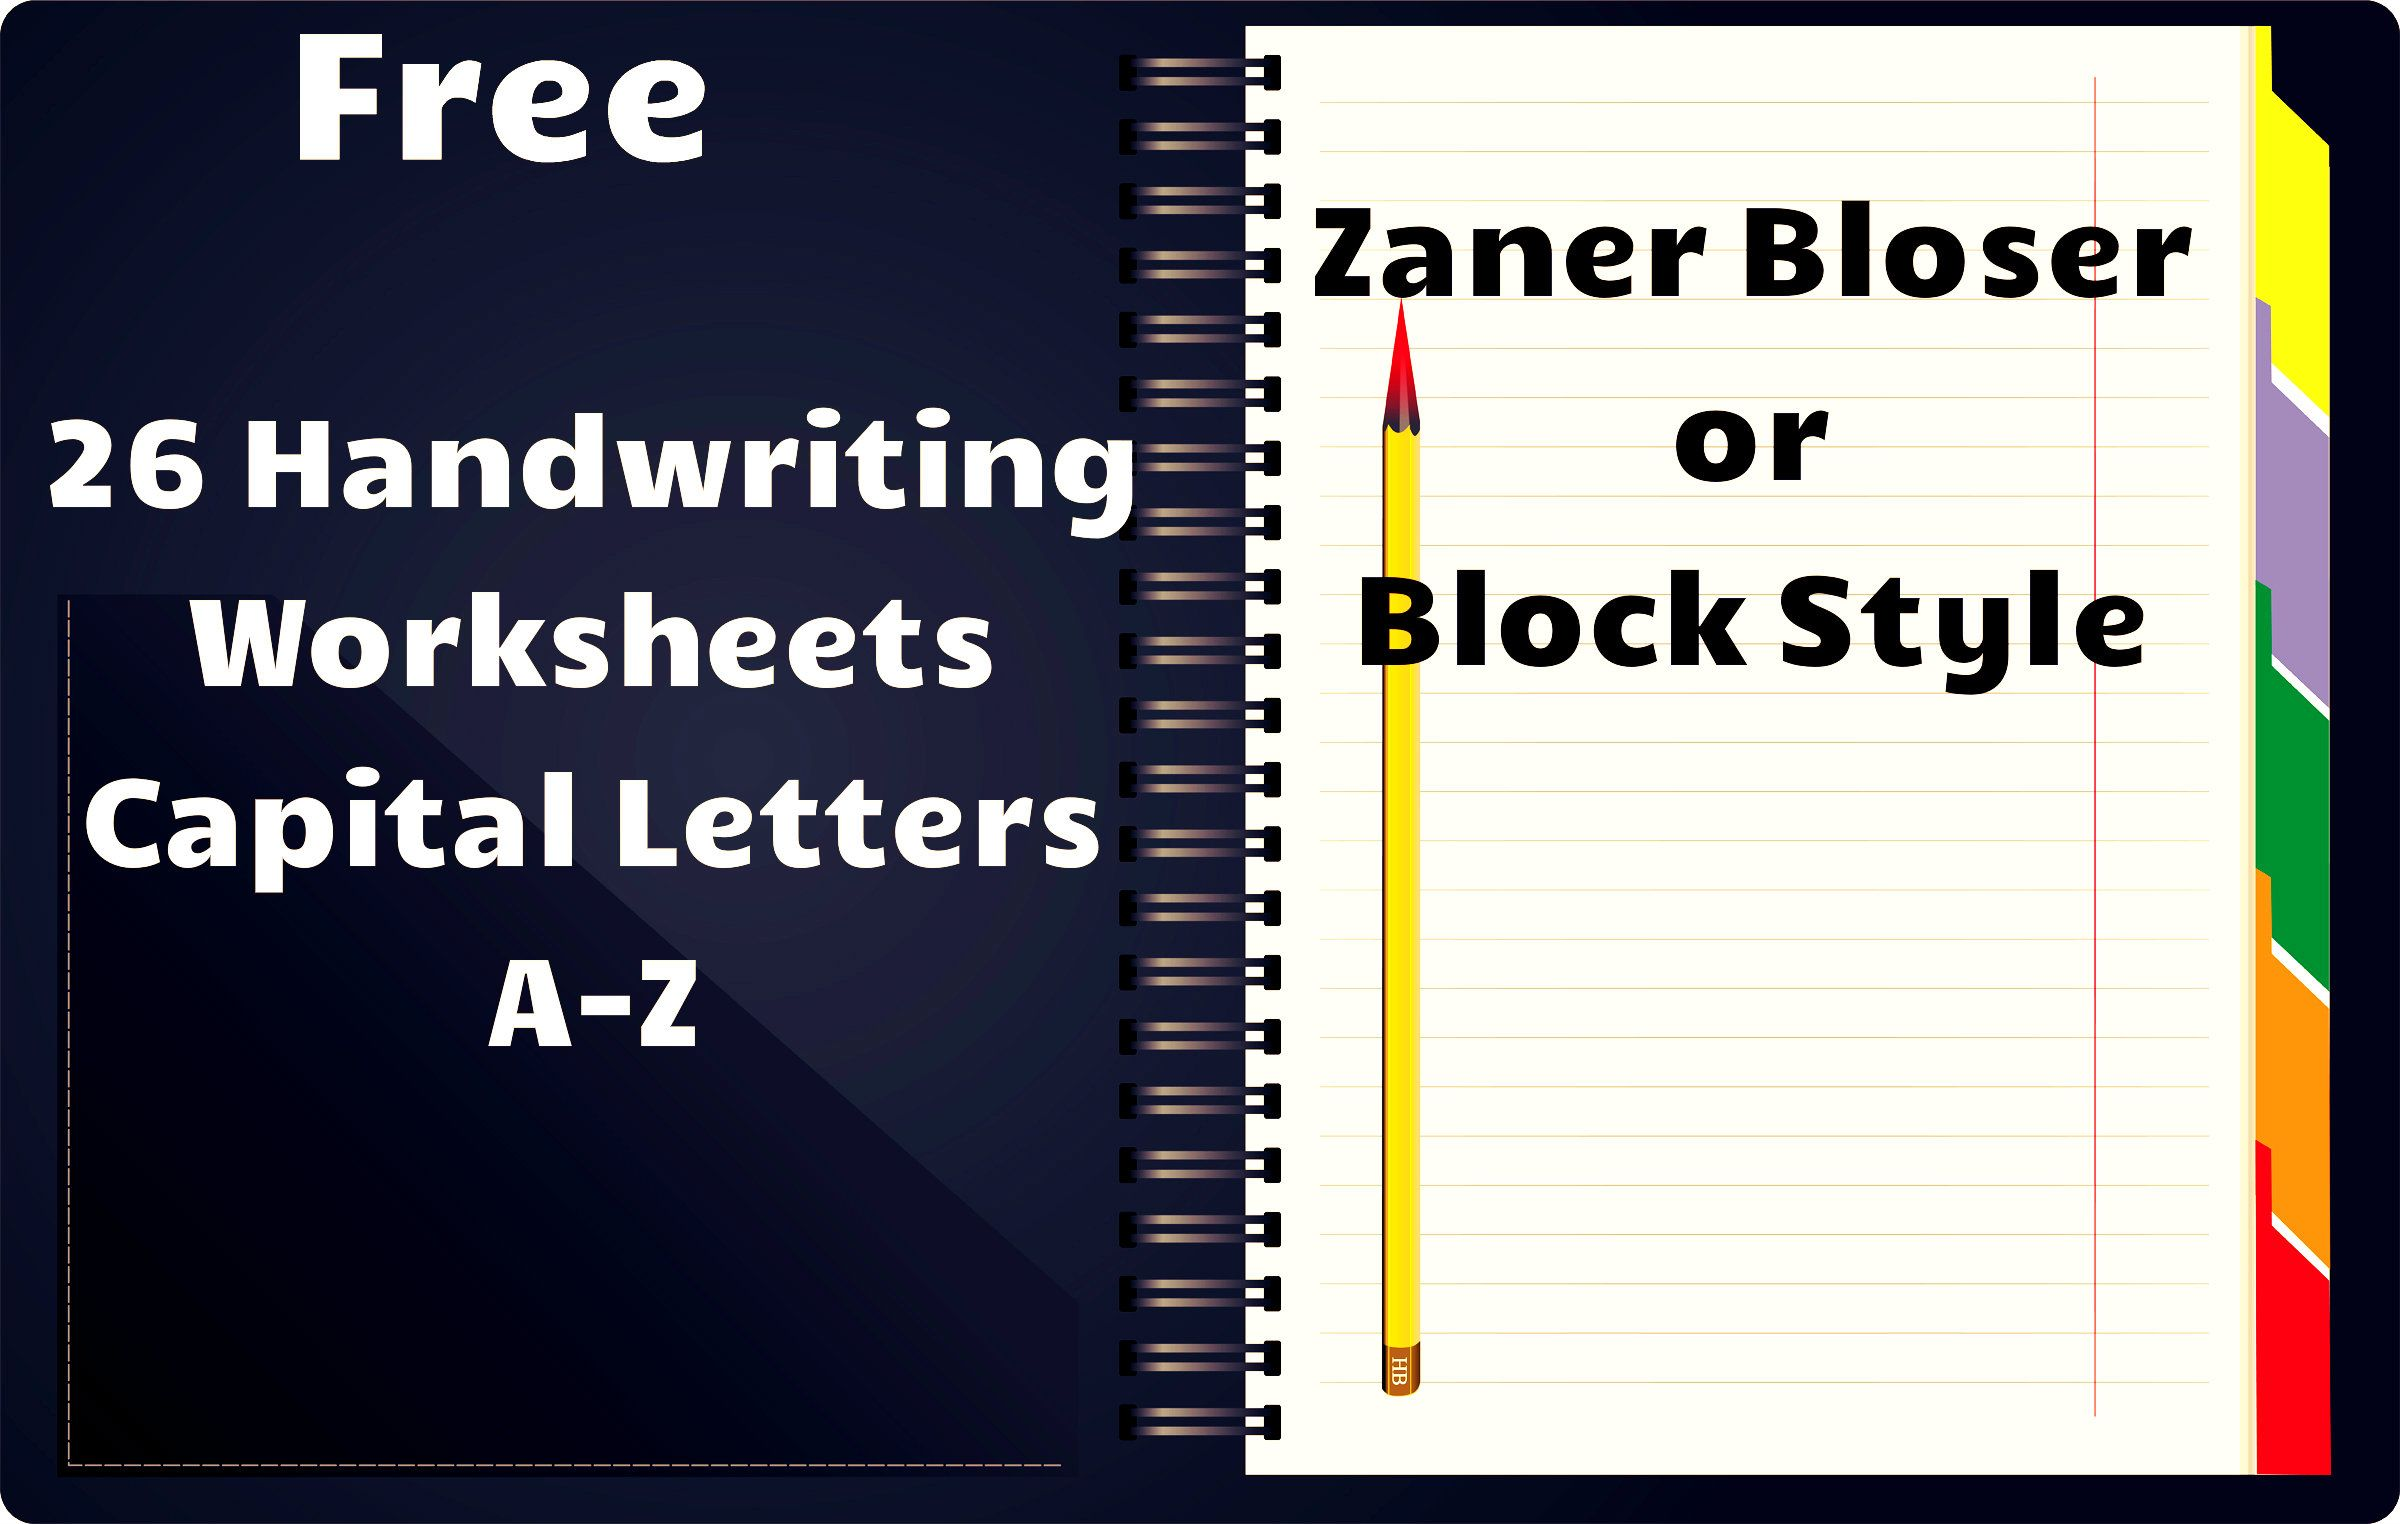 Free Handwriting Worksheets Includes Worksheets For All Capital Letters With Directions To Form